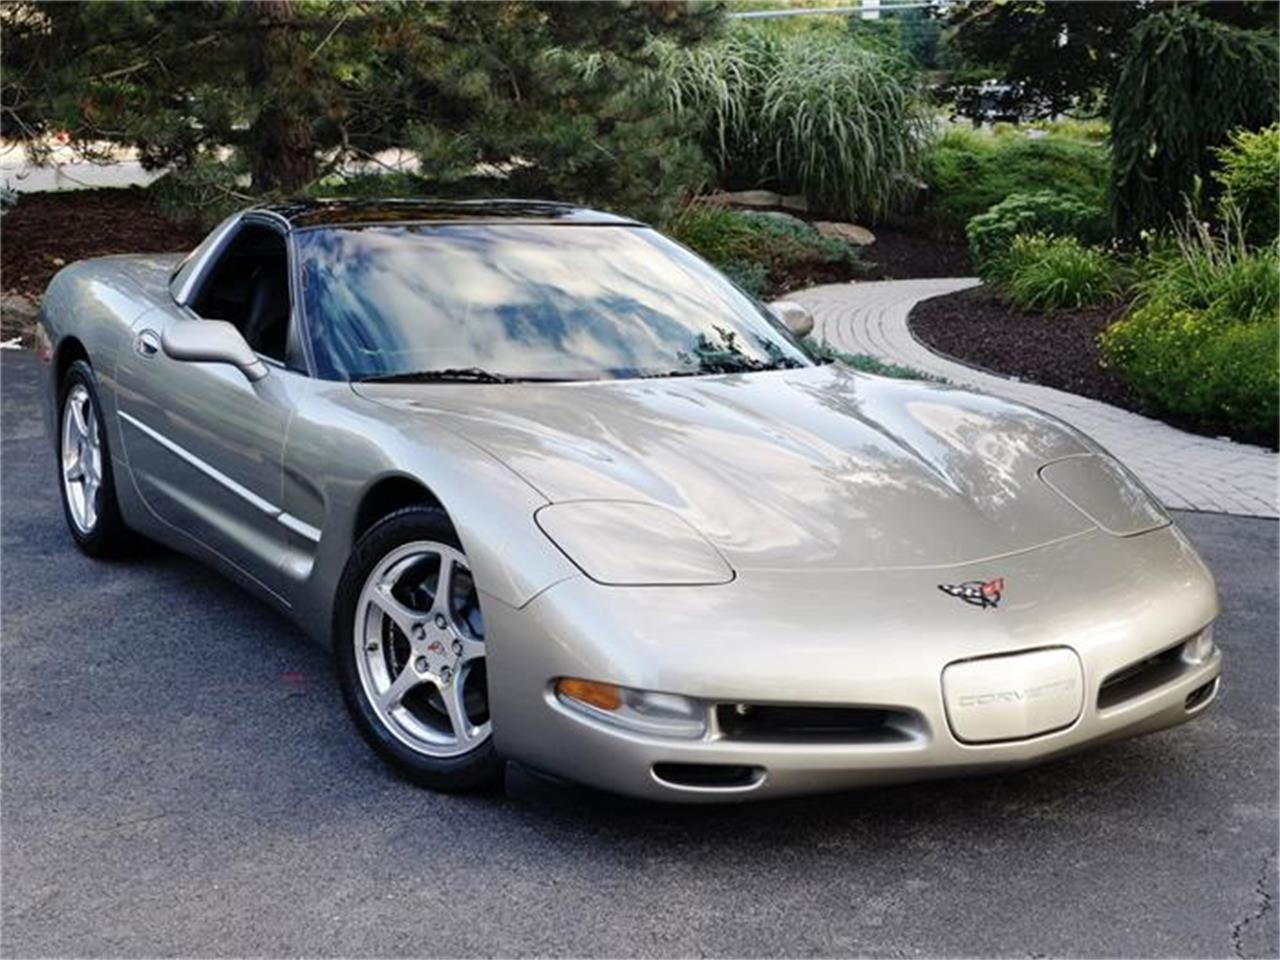 Large Picture of '99 Chevrolet Corvette located in Old Forge Pennsylvania - $17,900.00 - HB0J